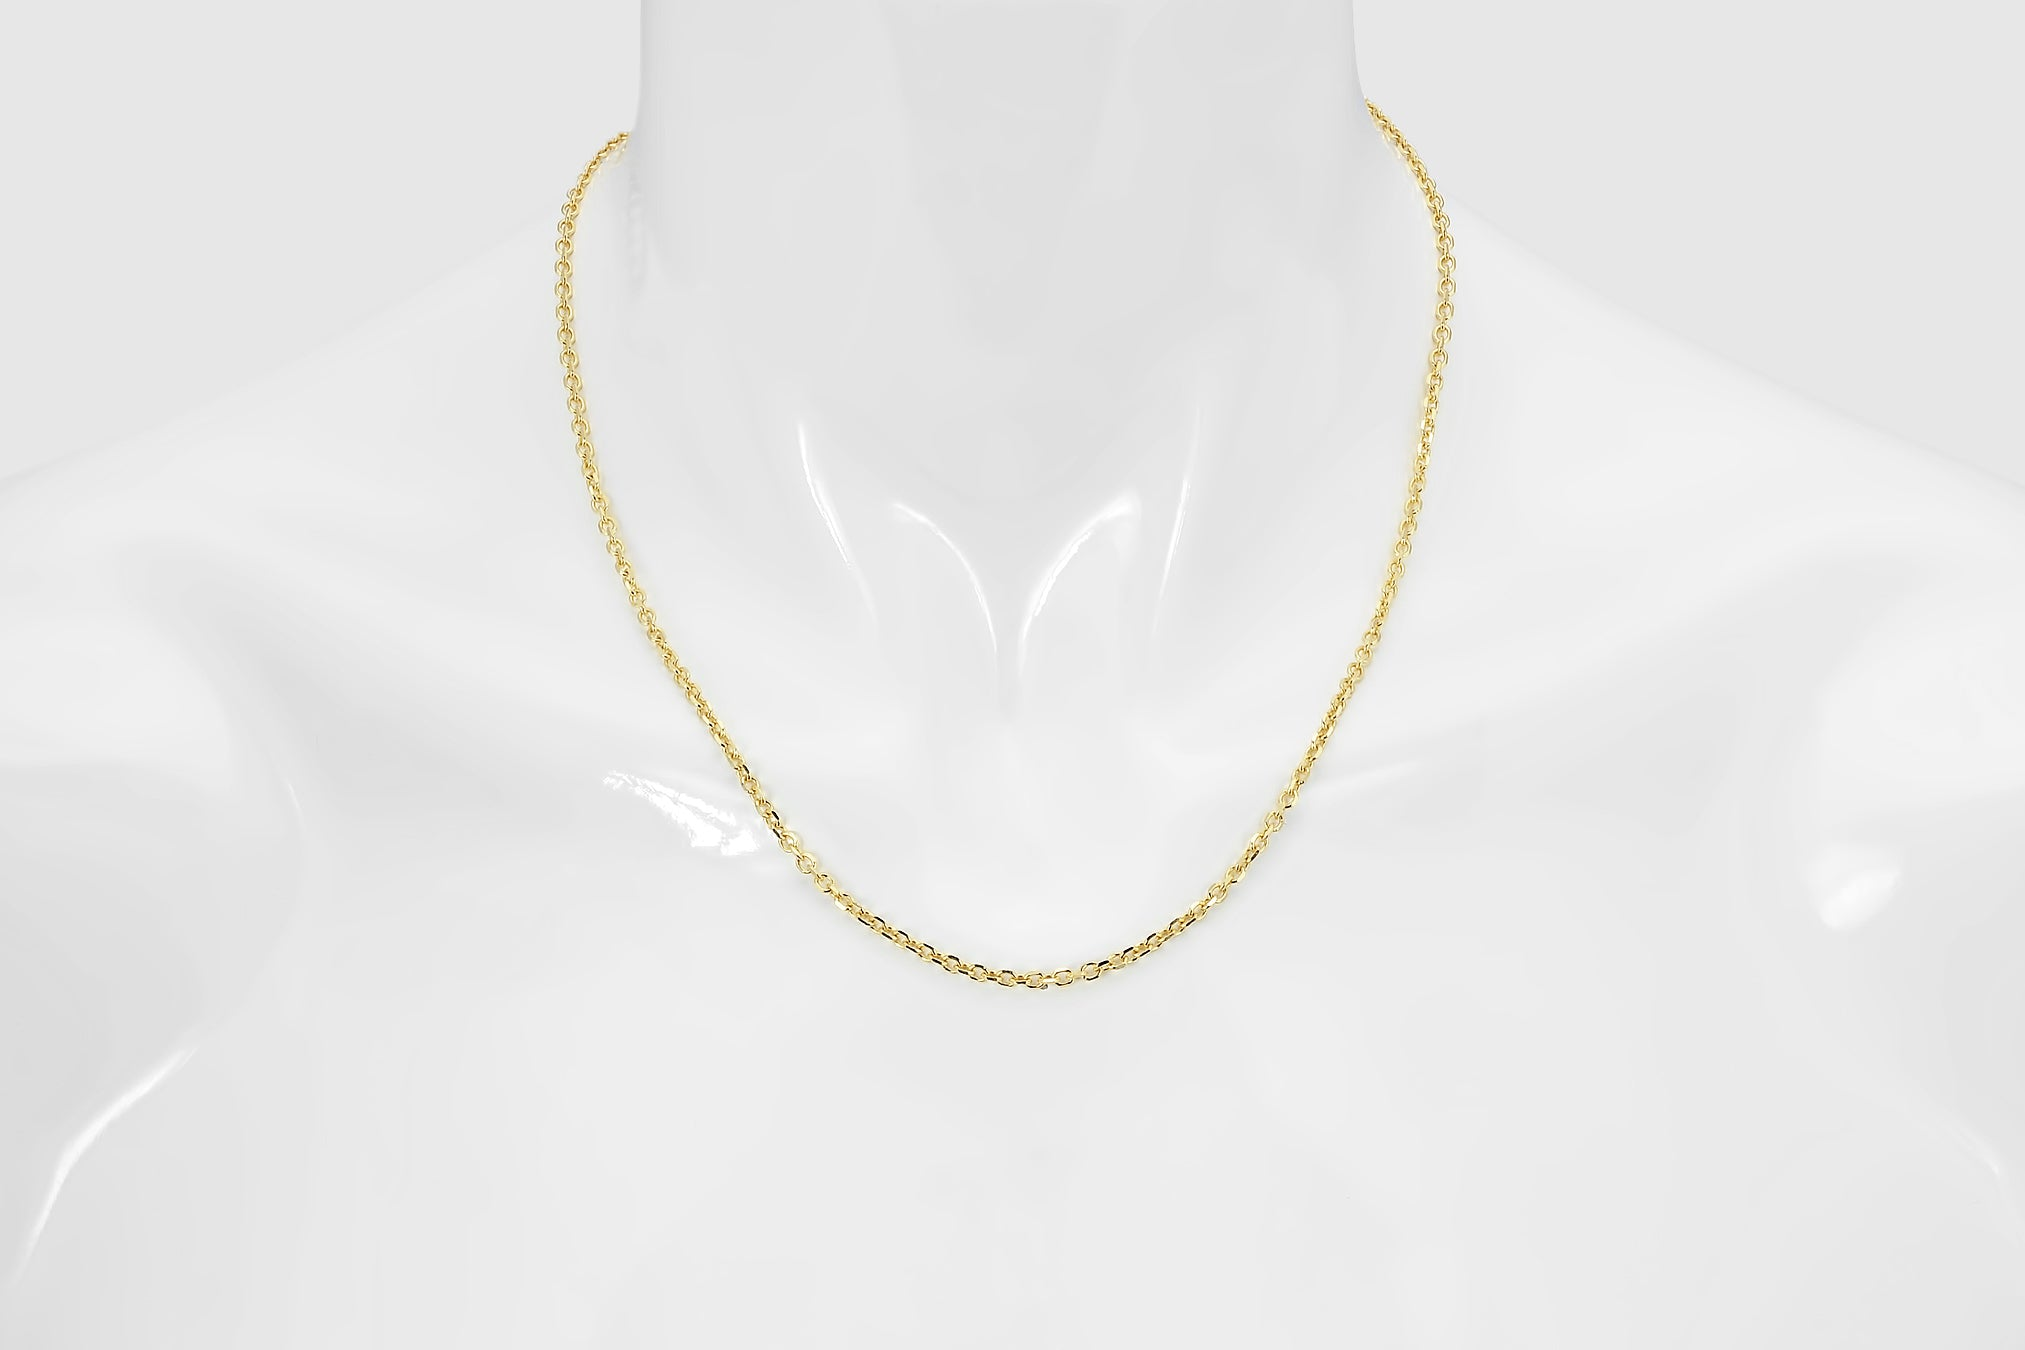 14Kt Gold Cable Chain With Lobster Lock Cable Chain 20 Inches Long